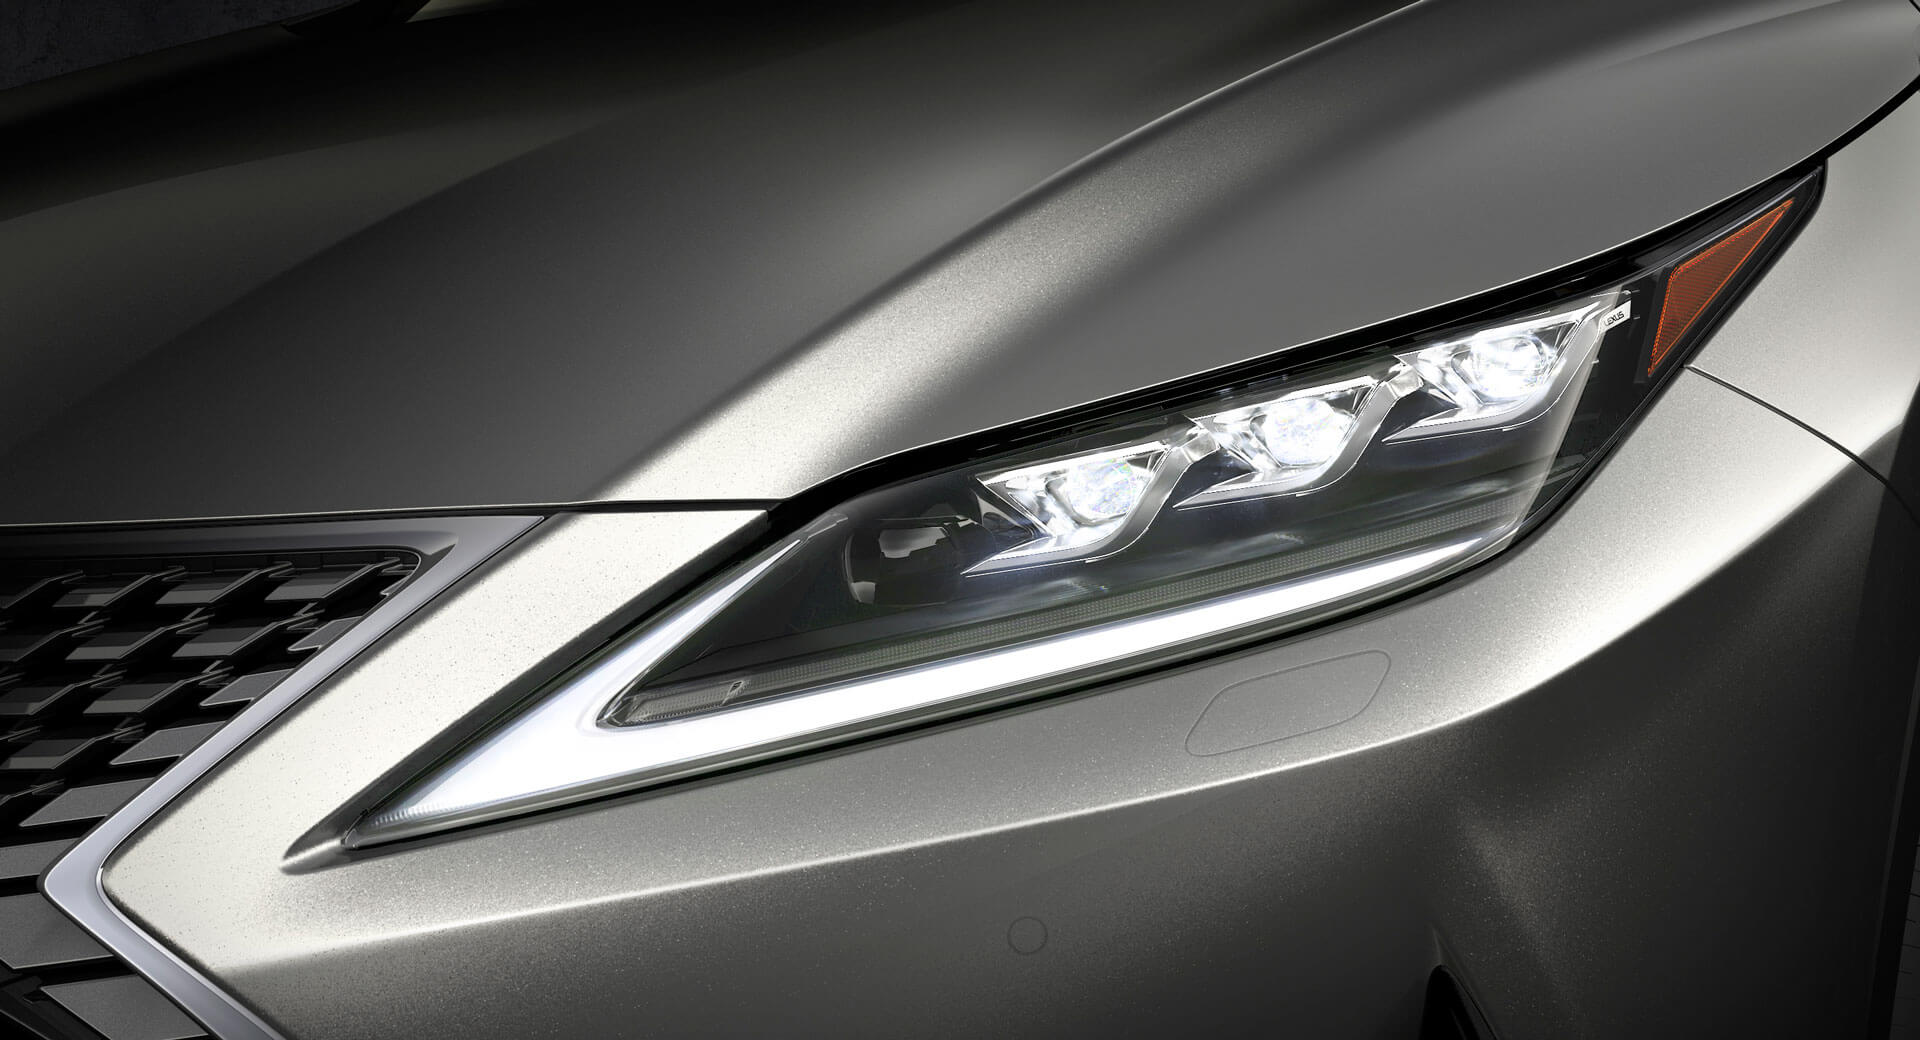 Astounding 2020 Lexus Rx Getting Innovative Led Headlights As A World First Wiring Cloud Apomsimijknierdonabenoleattemohammedshrineorg